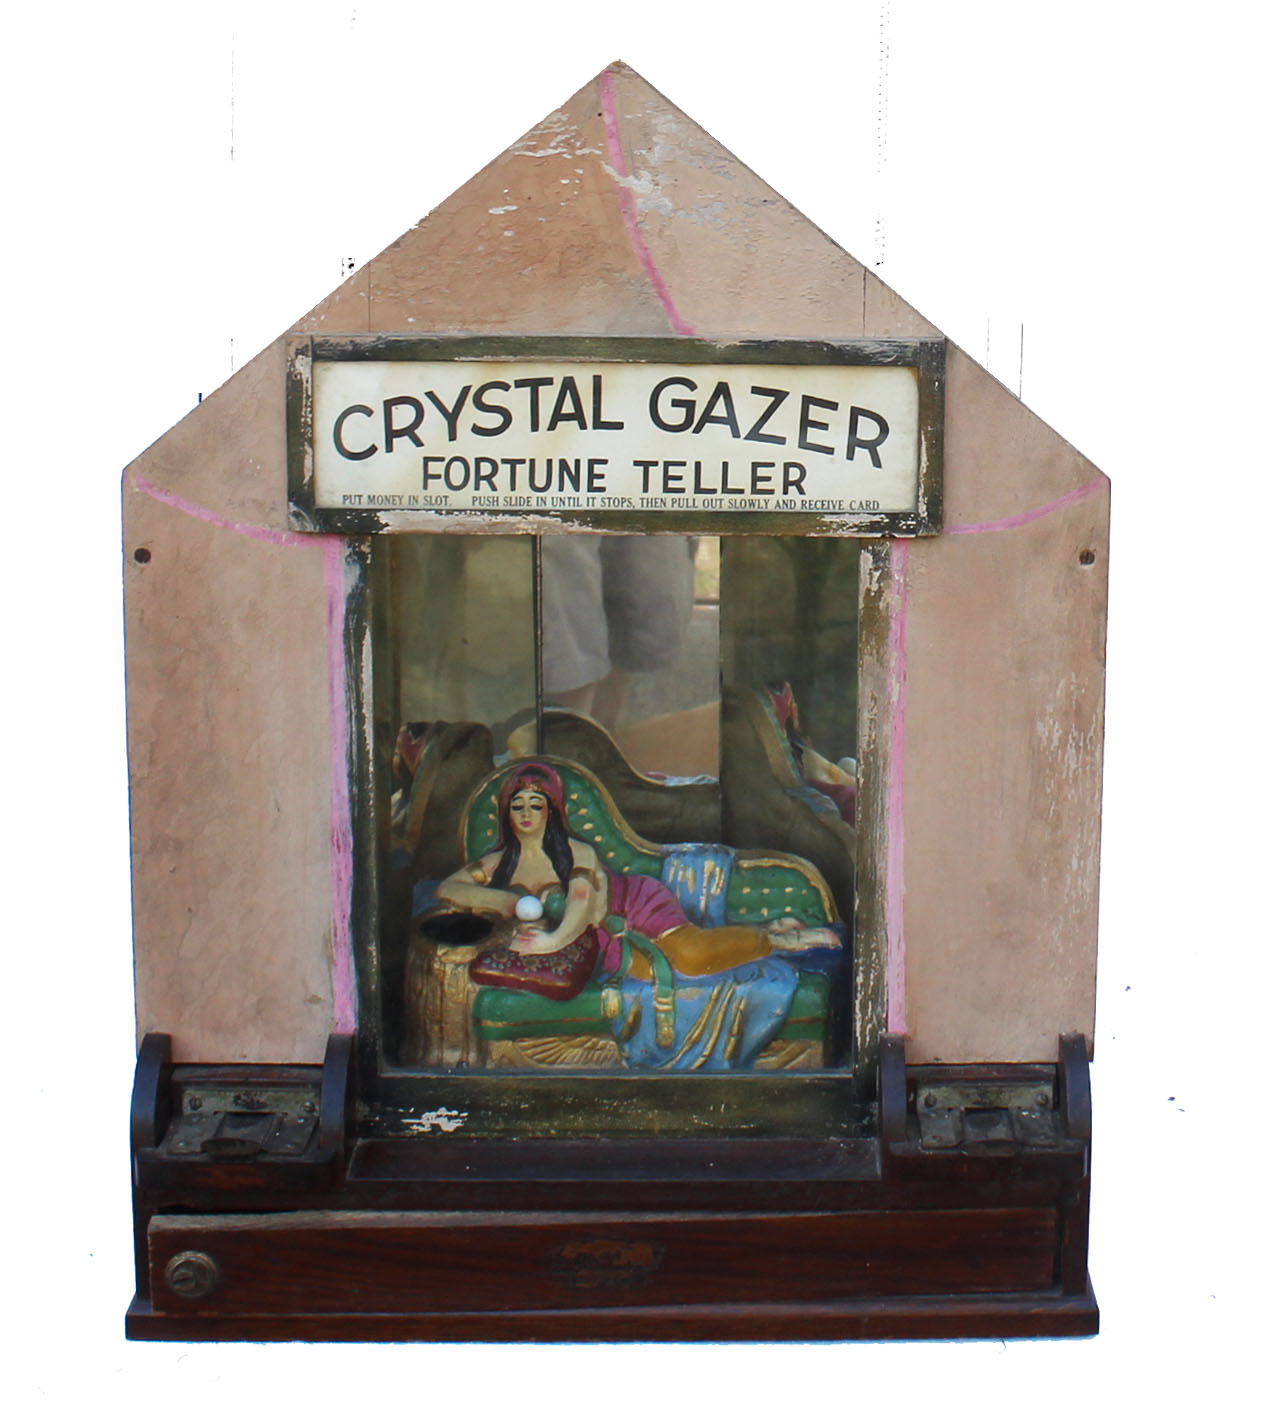 https://0201.nccdn.net/4_2/000/000/00f/745/ARCADE---CRYSTAL-GAZER-FORTUNE-TELLER-TOP-1261x1416.jpg